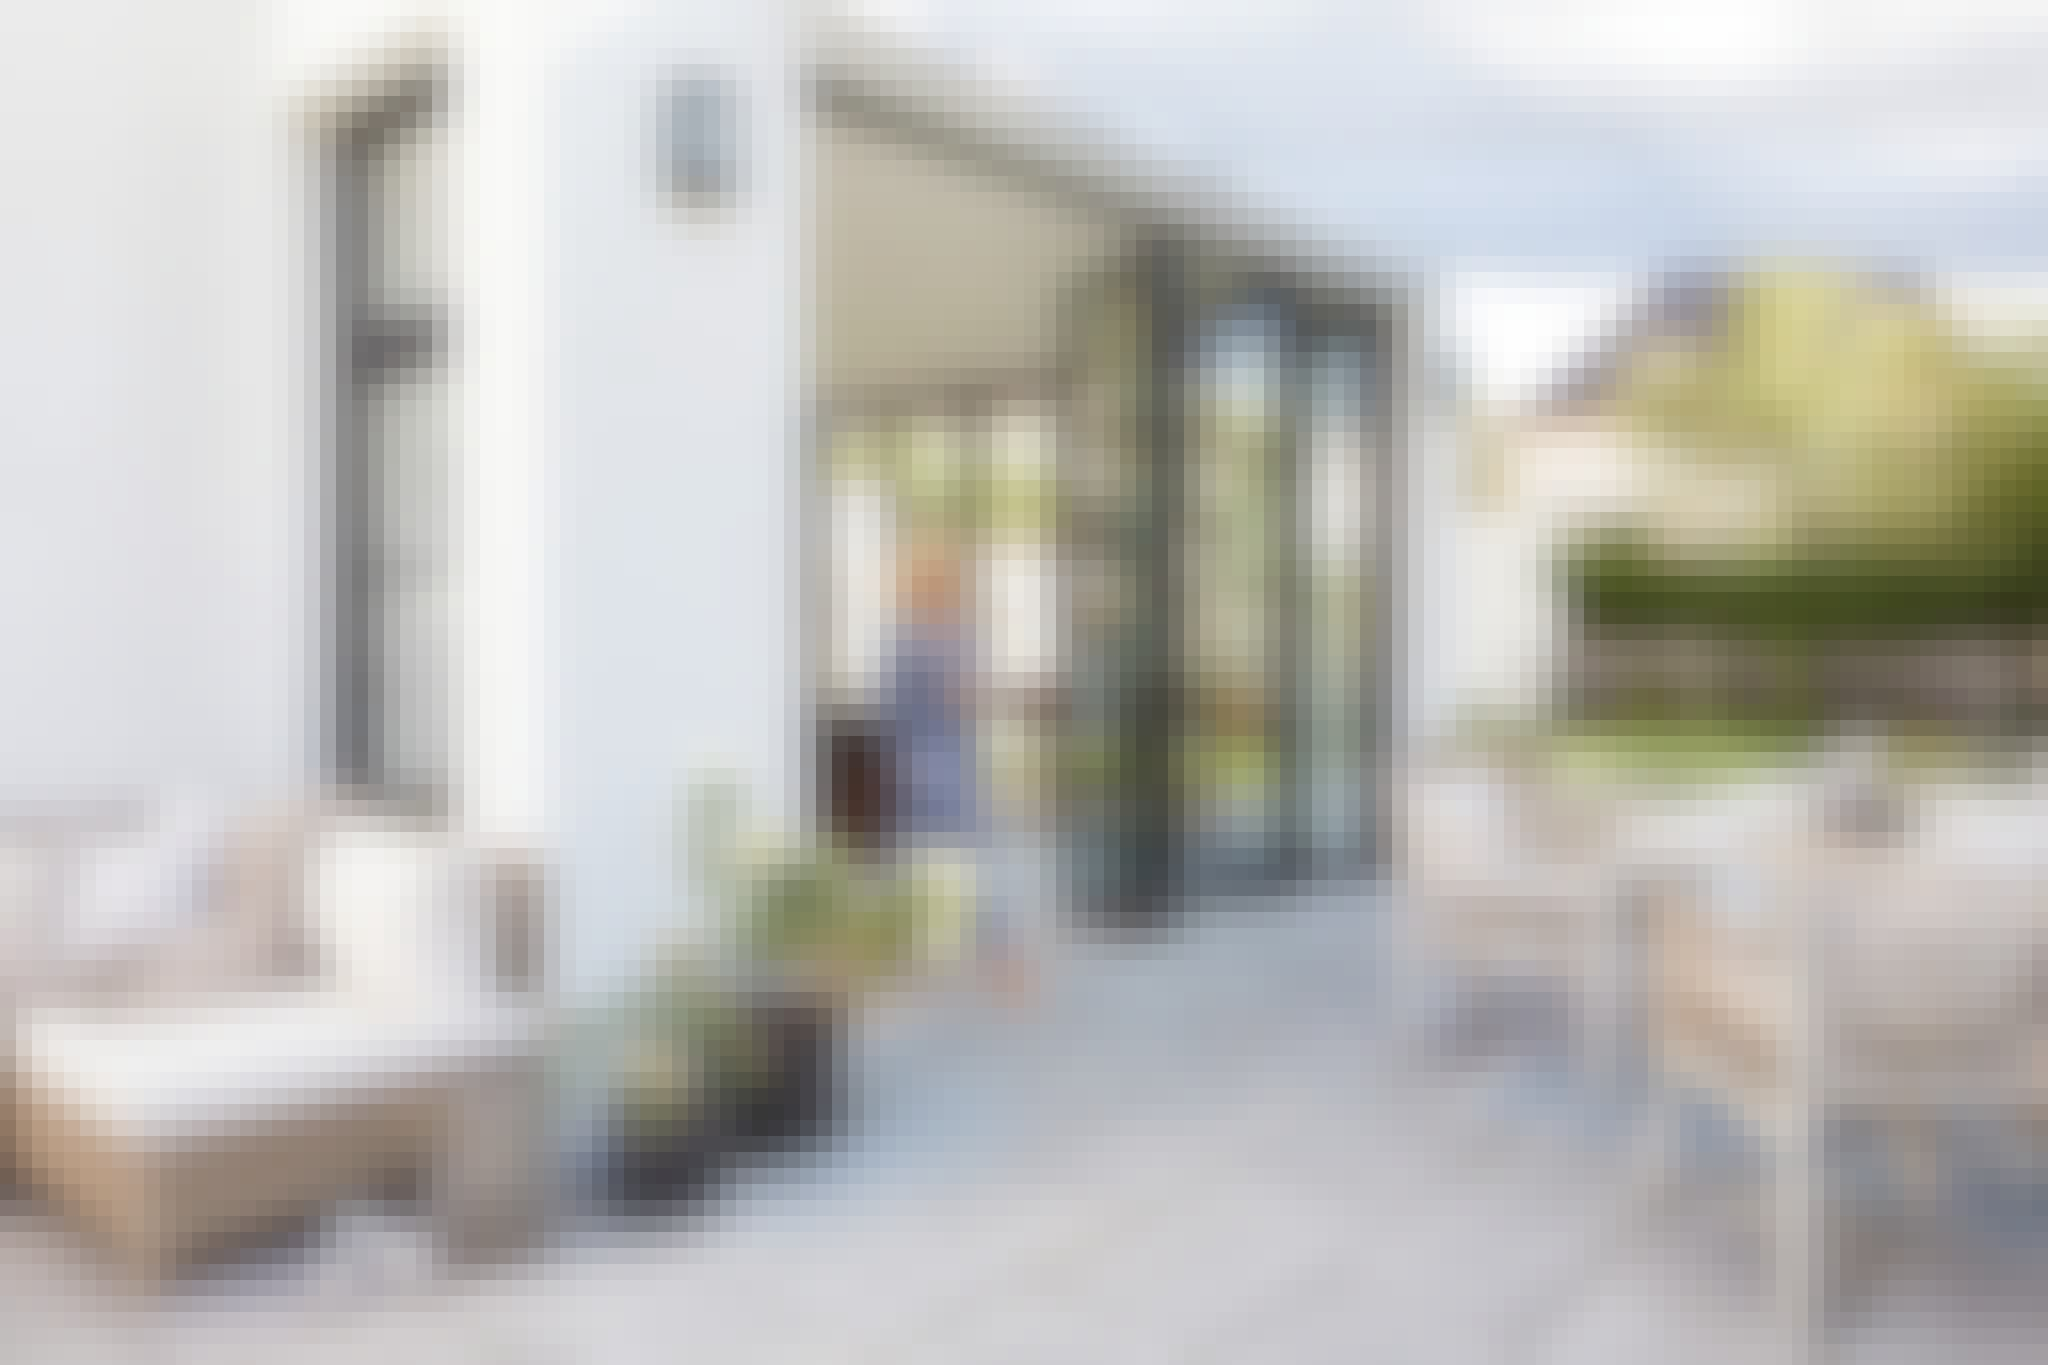 opening glass patio doors for outdoor dining